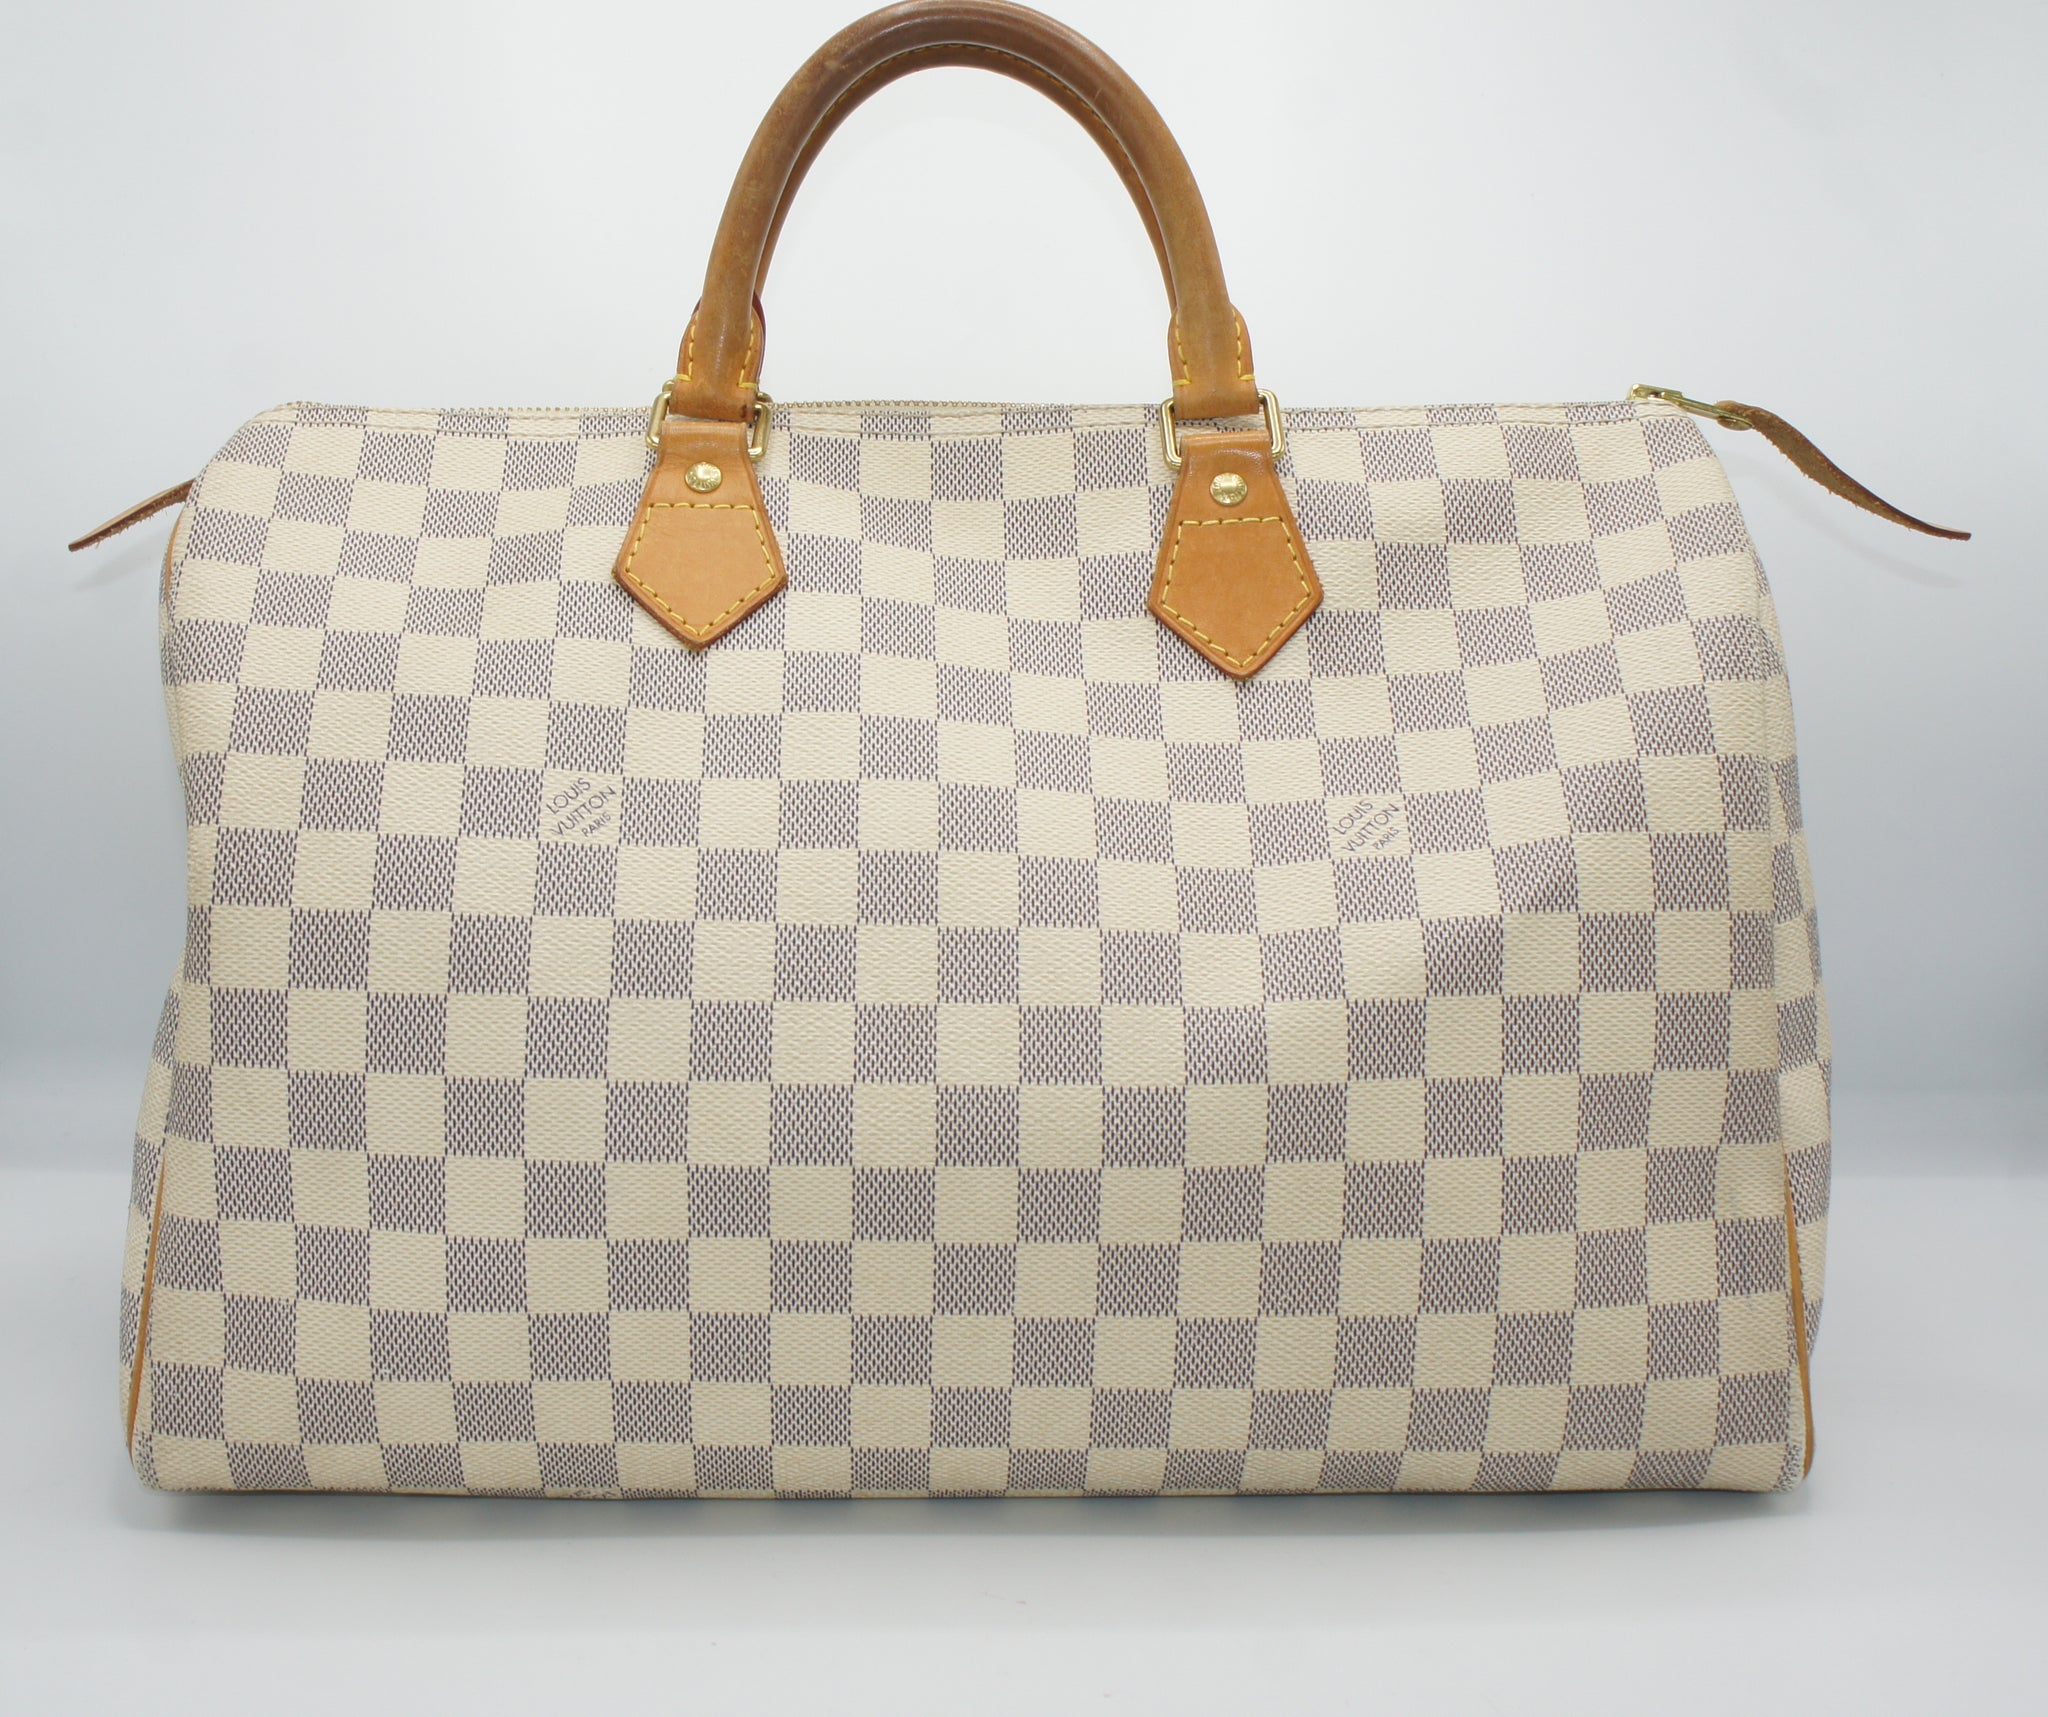 Louis Vuitton Speedy 35 - Iconics Preloved Luxury